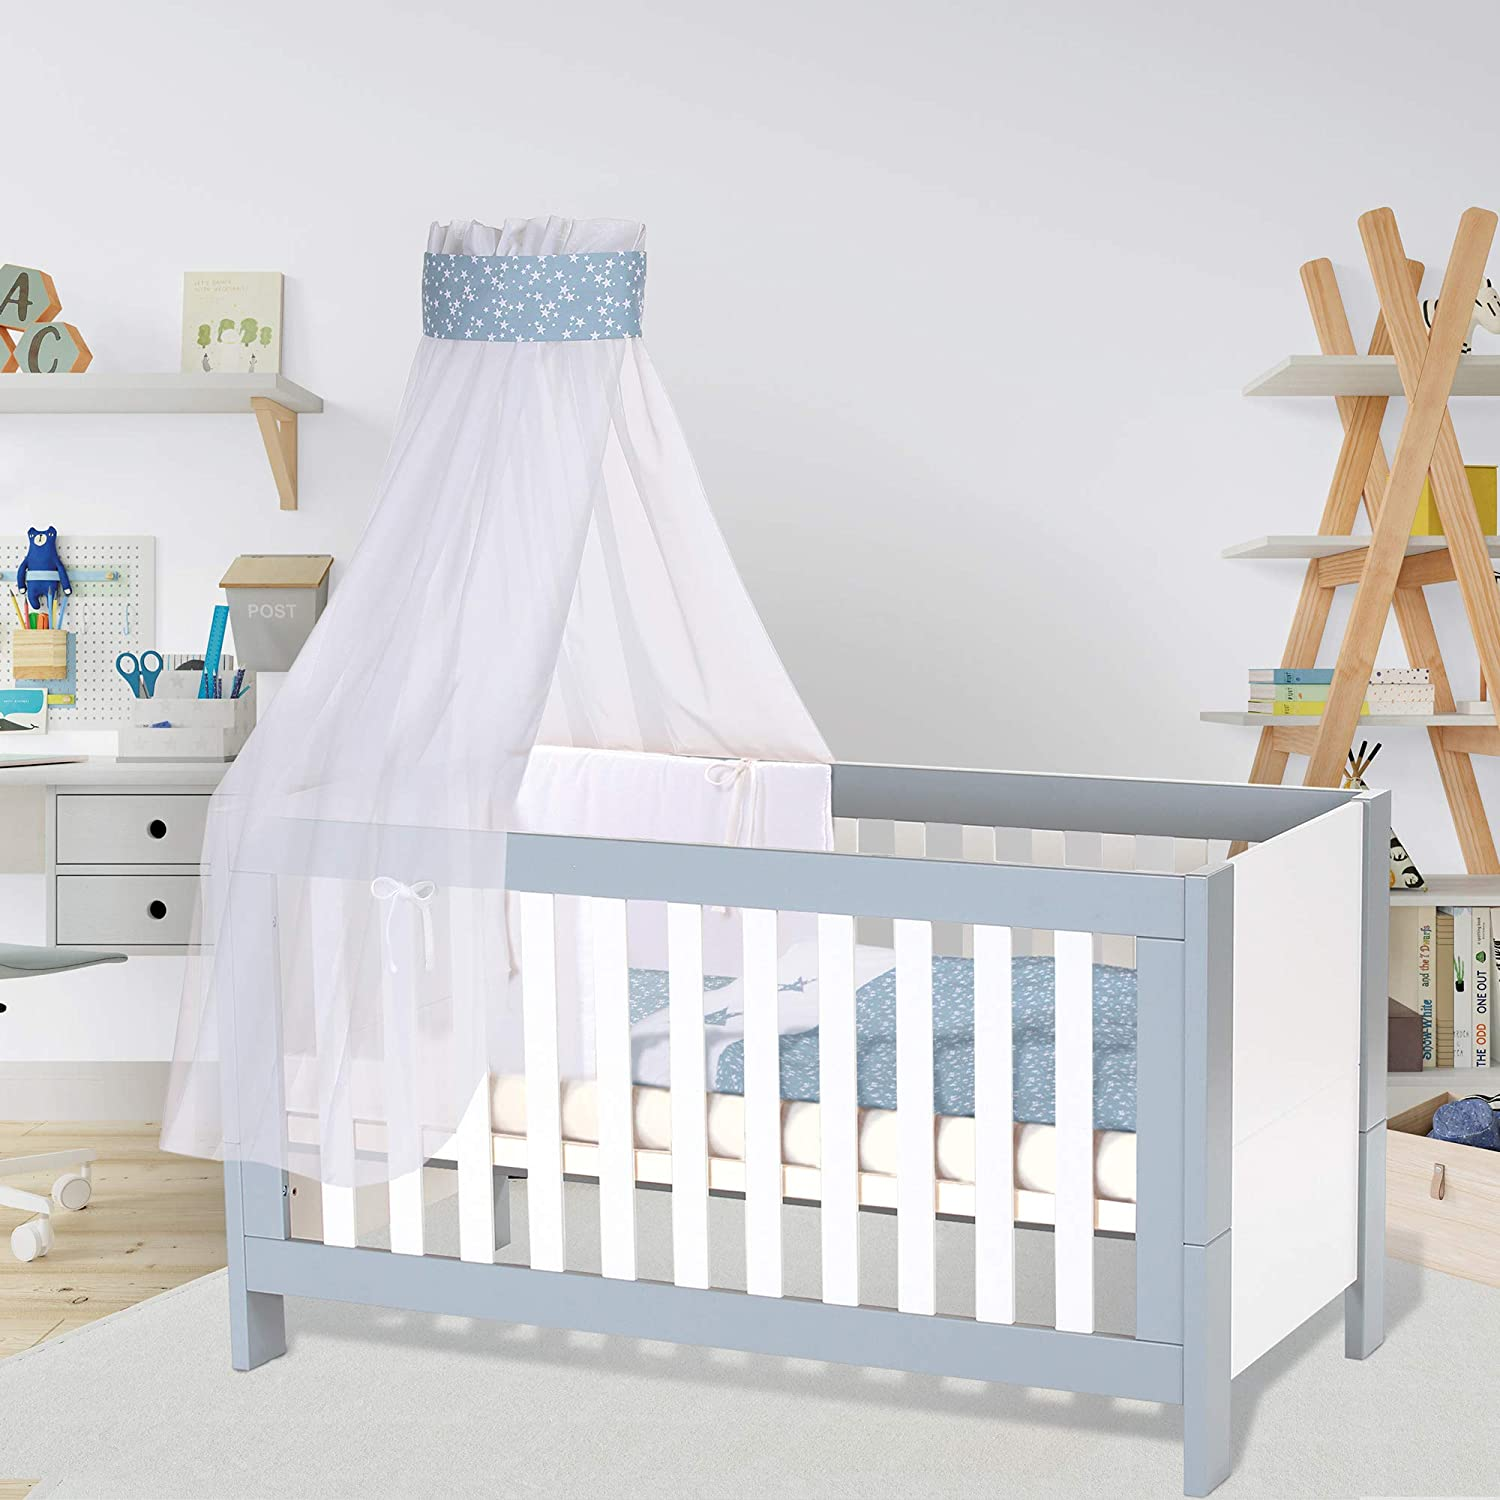 Babybay Melina Slatted Frame Suitable For Cot, Natural Untreated, Sin Tratar, 70 x 140 cm